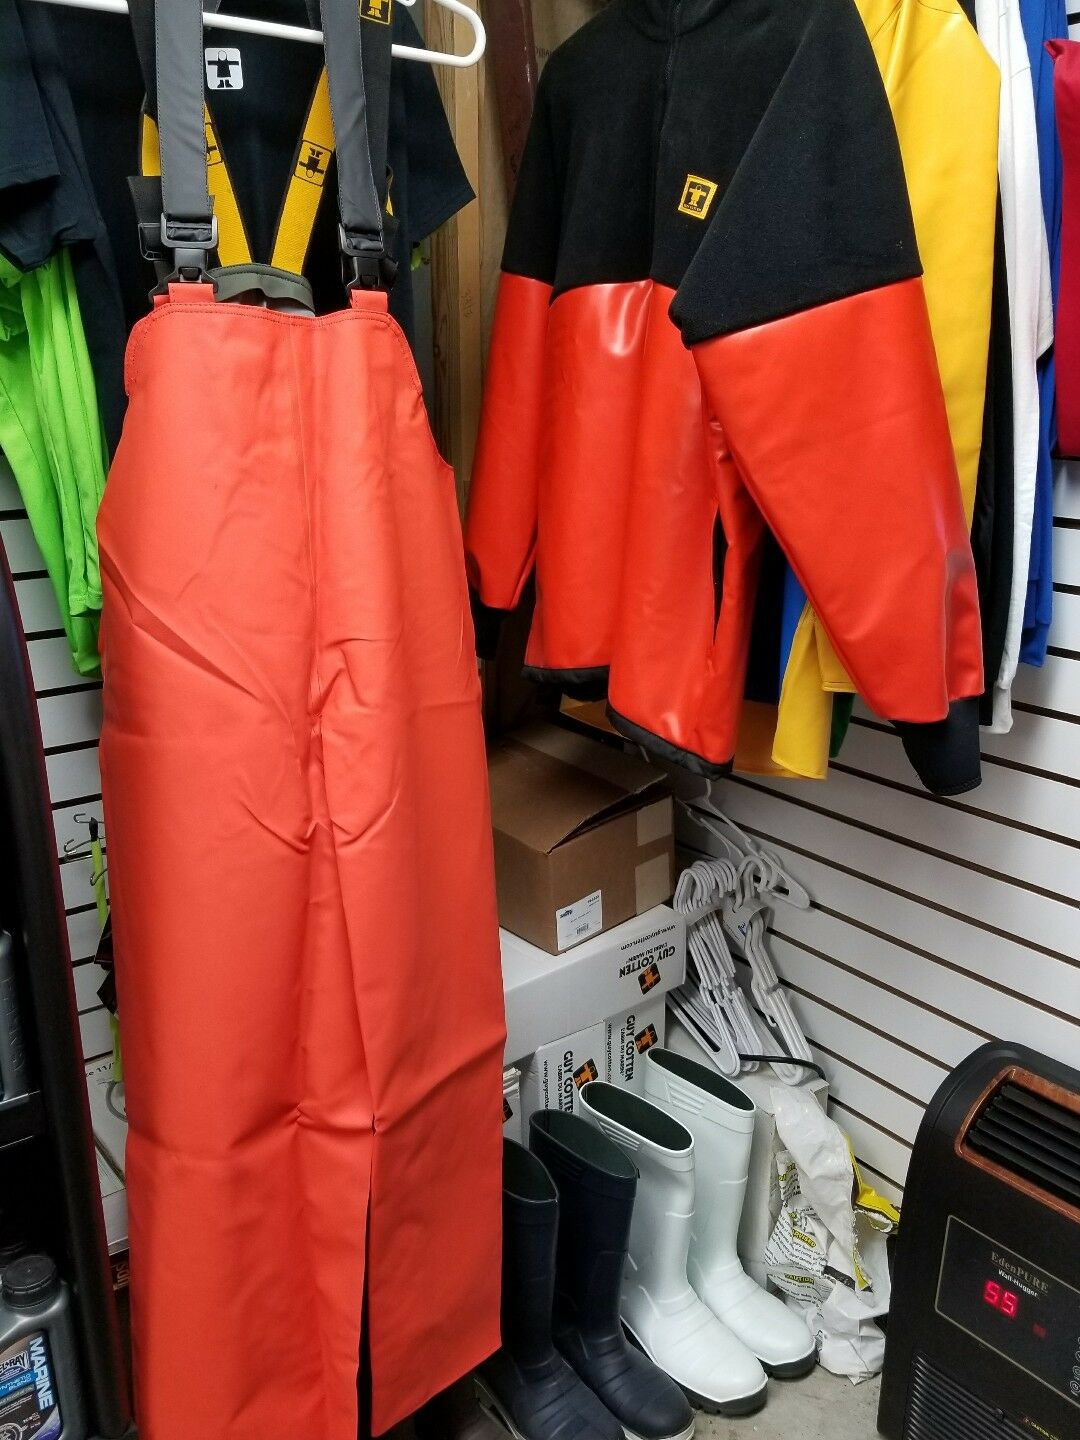 GUY COTTEN PAB PACIFIC BIB TROUSERS COMMERCIAL FOUL WEATHER RAIN GEAR